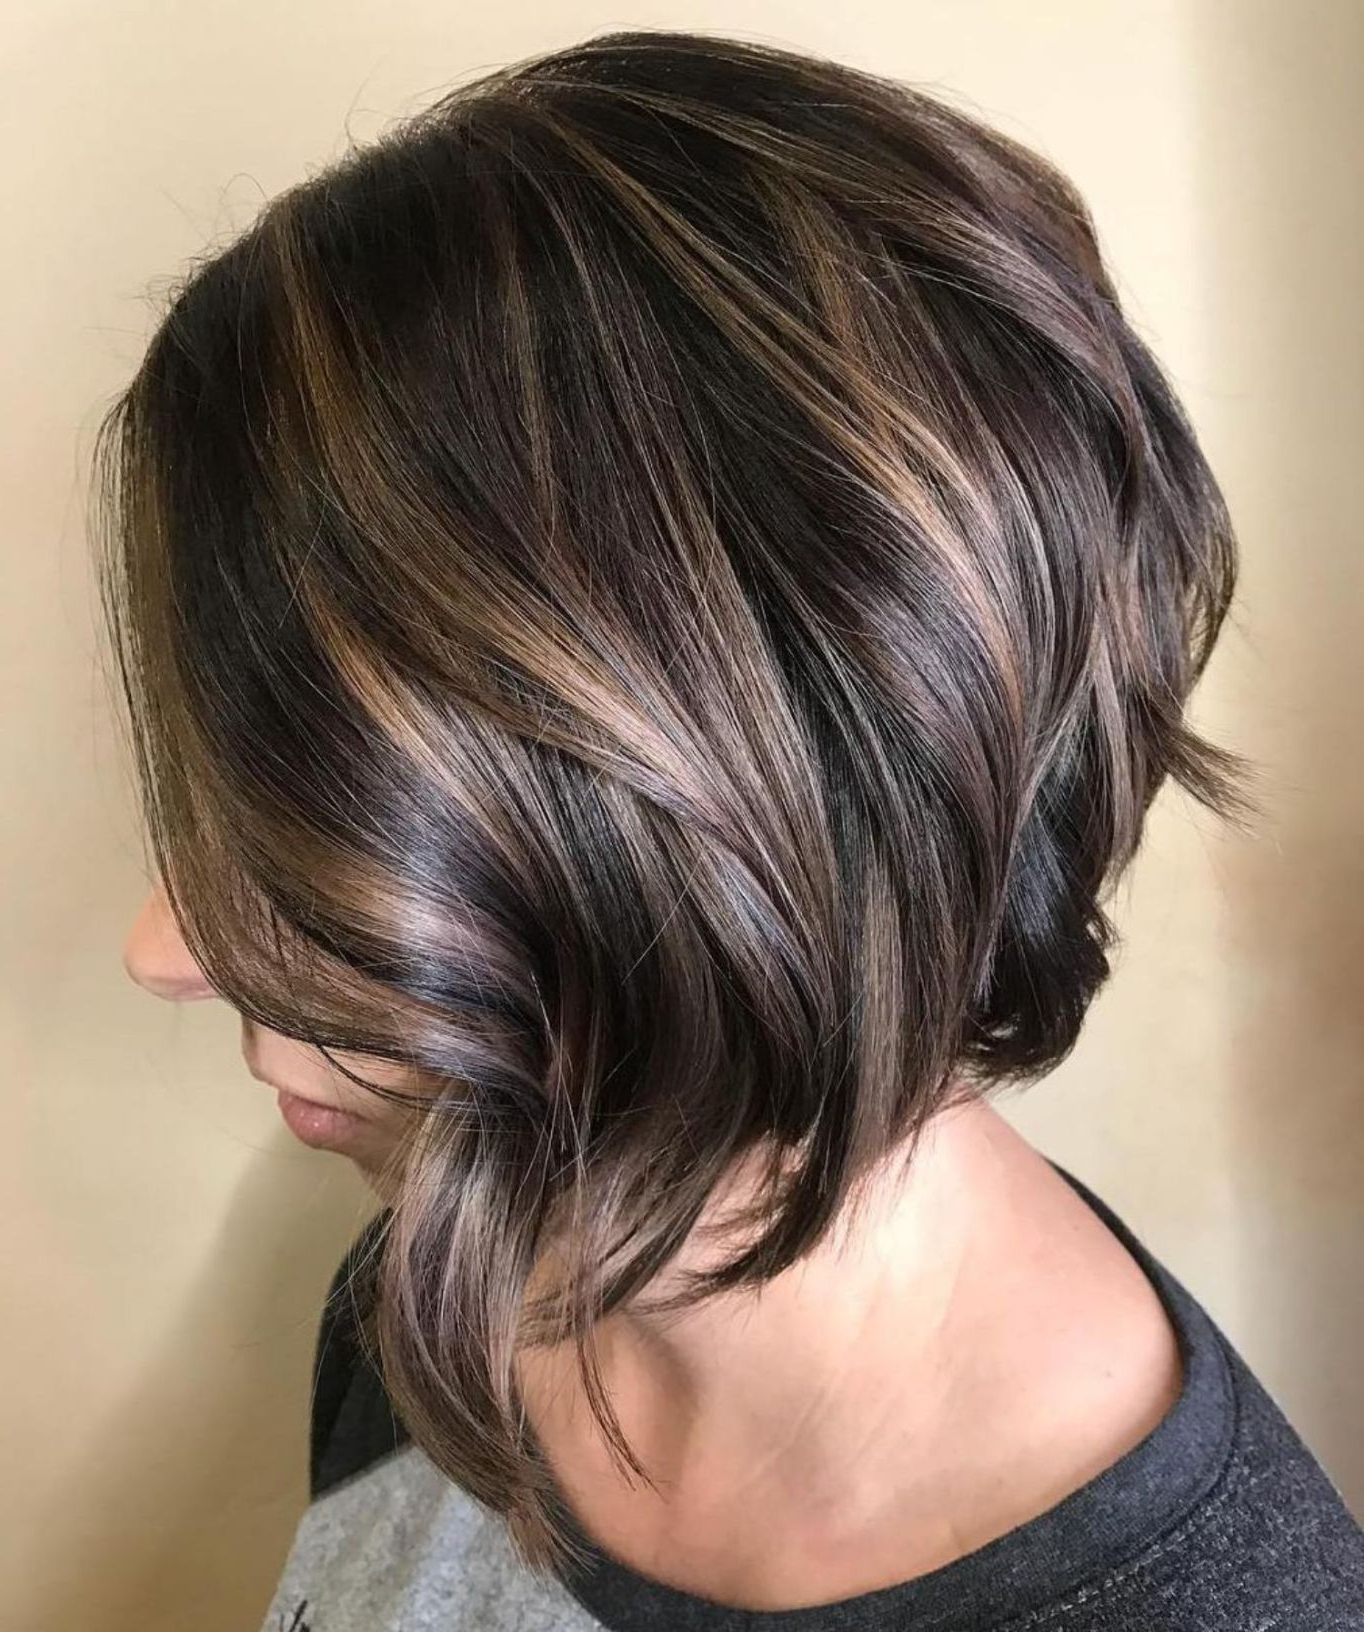 Famous Sassy A Line Bob Hairstyles Regarding 70 Best A Line Bob Hairstyles Screaming With Class And Style (Gallery 3 of 20)